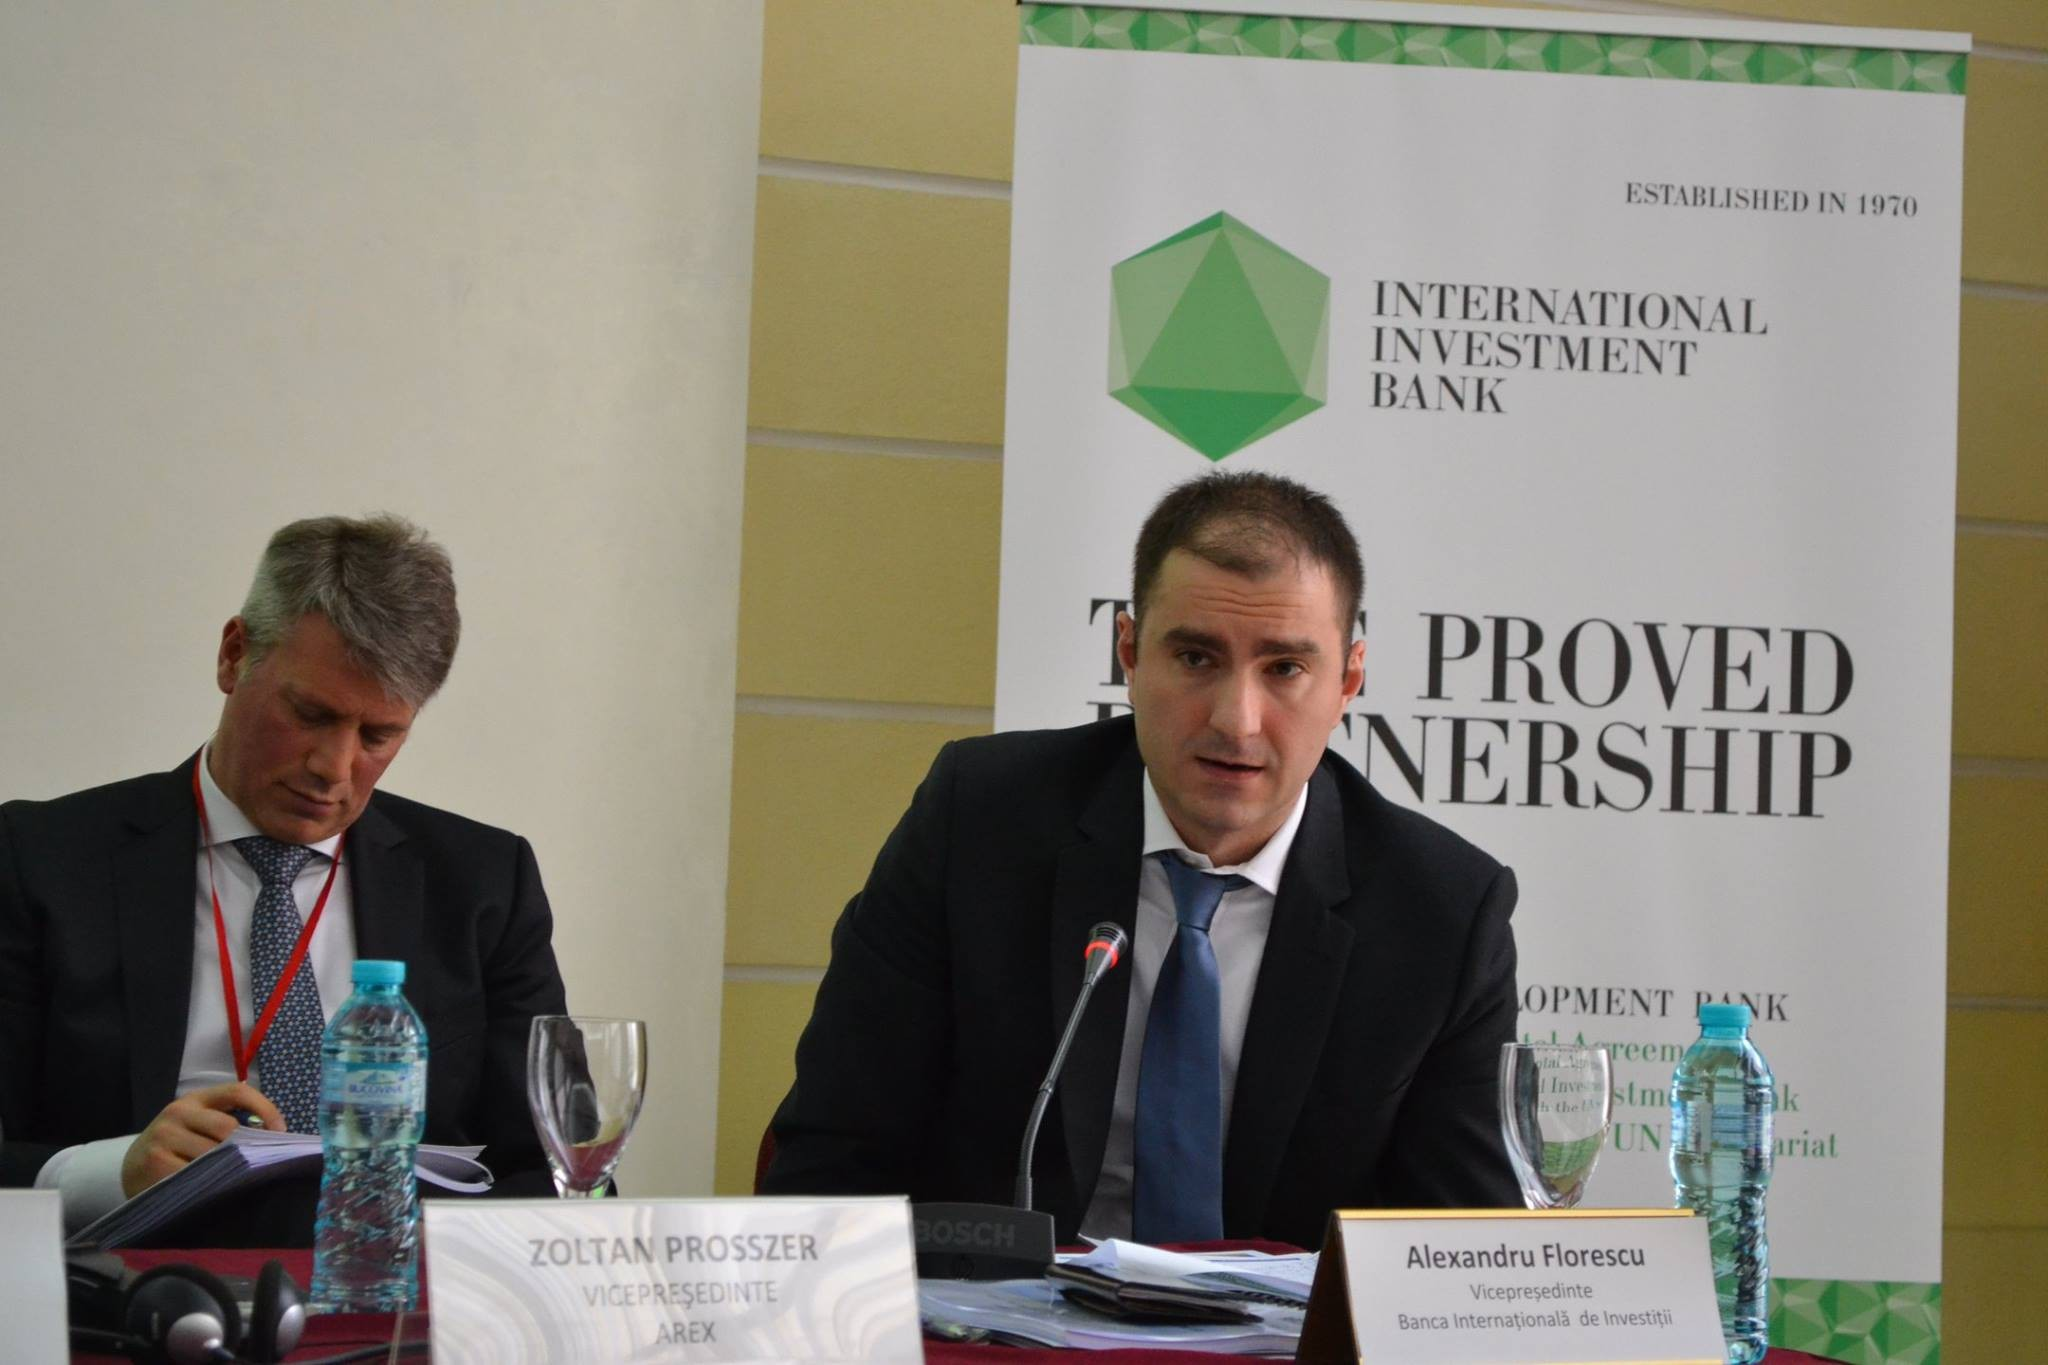 Demand for IIB's investment products and services confirmed in Romania's regions